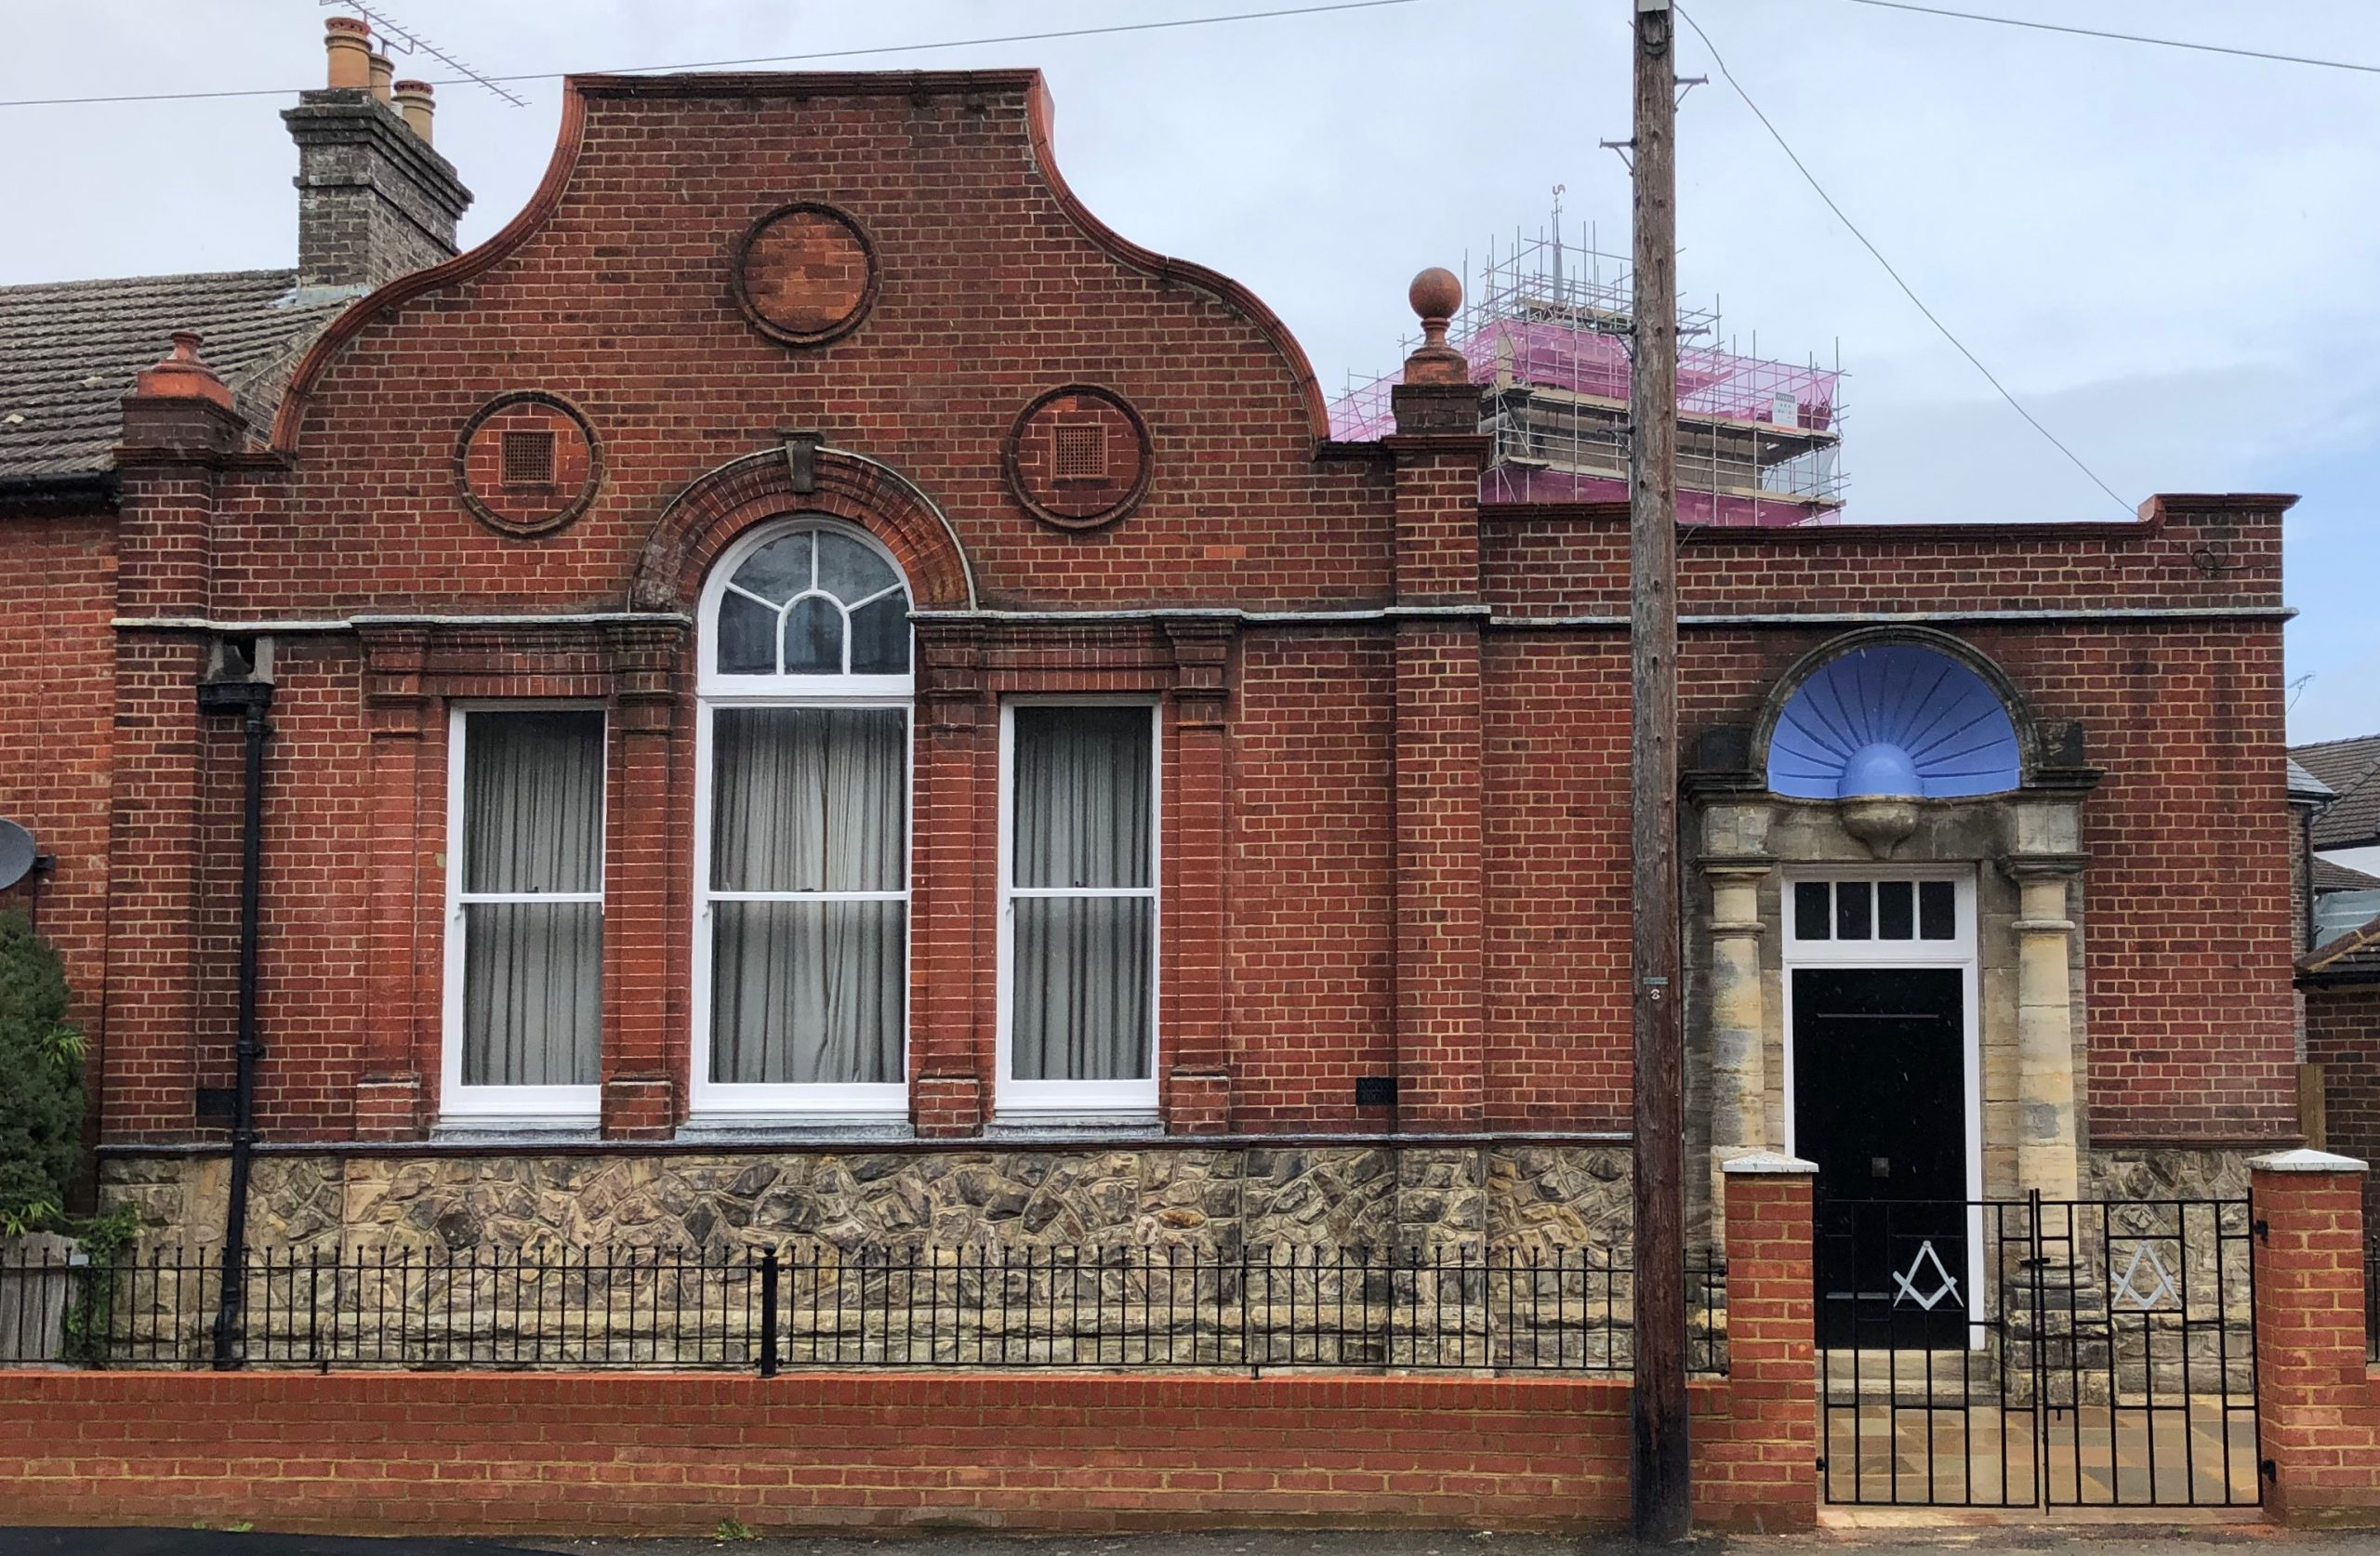 Freemason lodge in East Grinstead